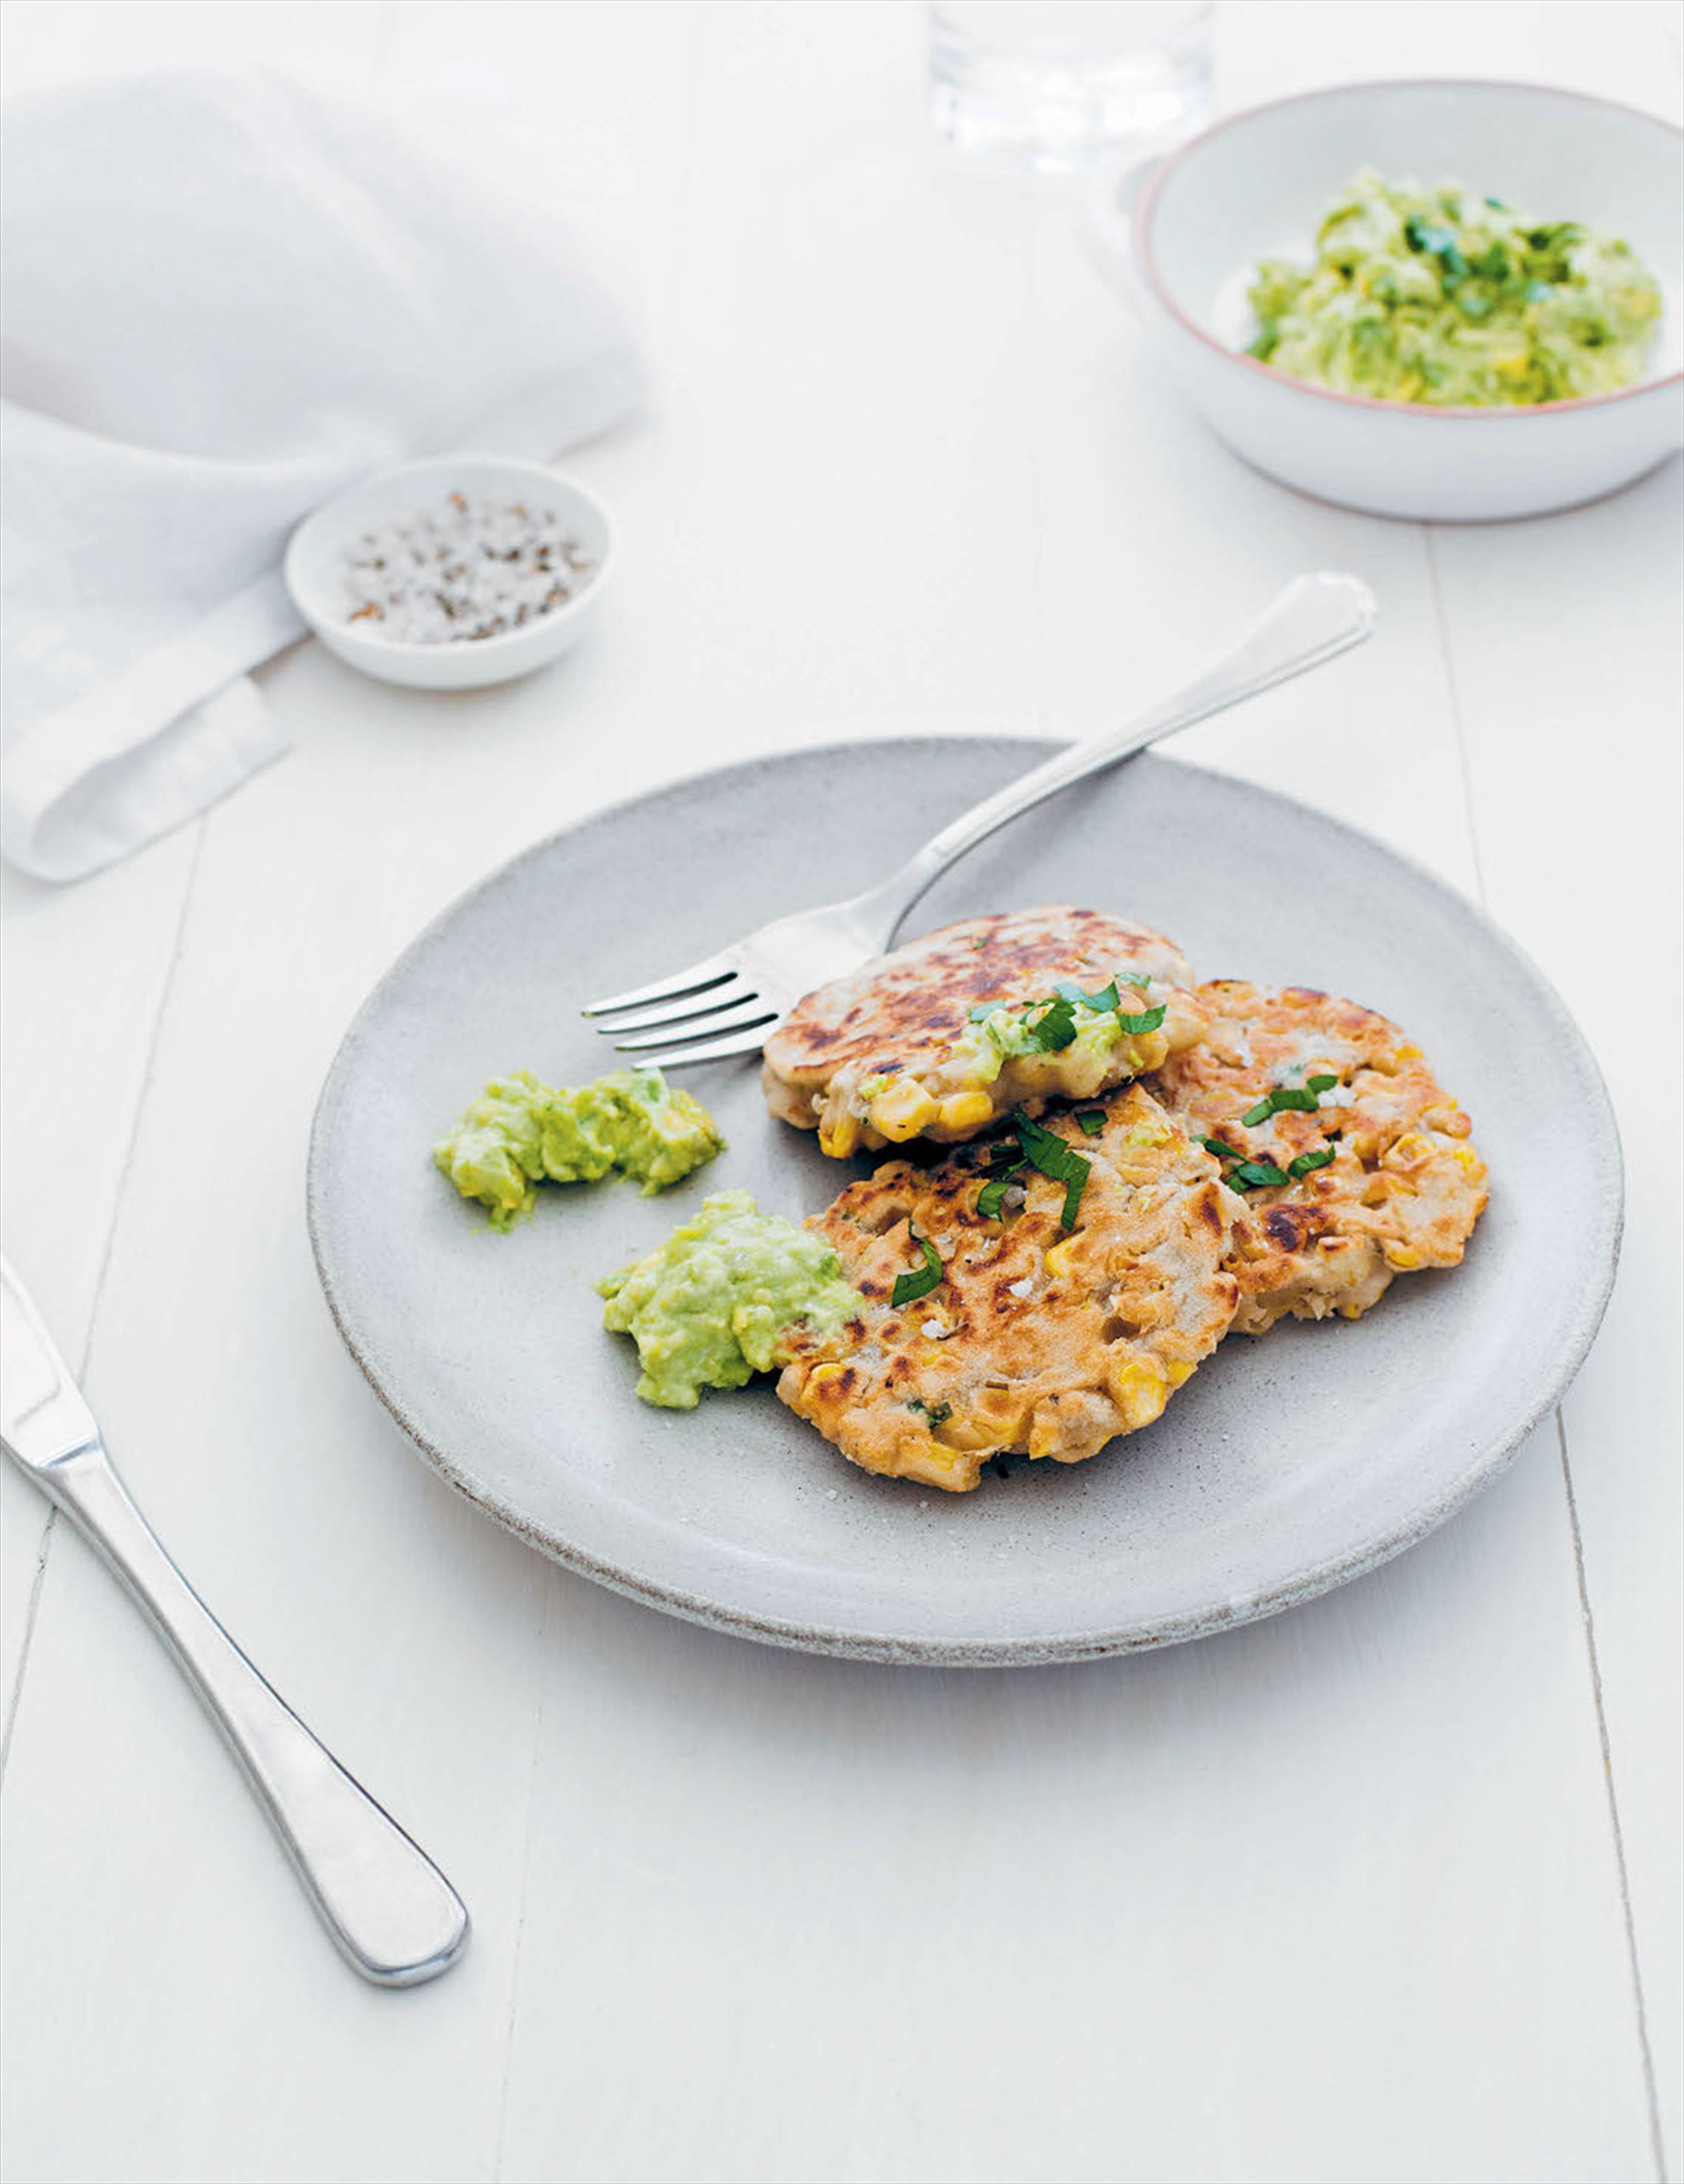 Corn fritters with avocado and 'goat's' cheeses mash